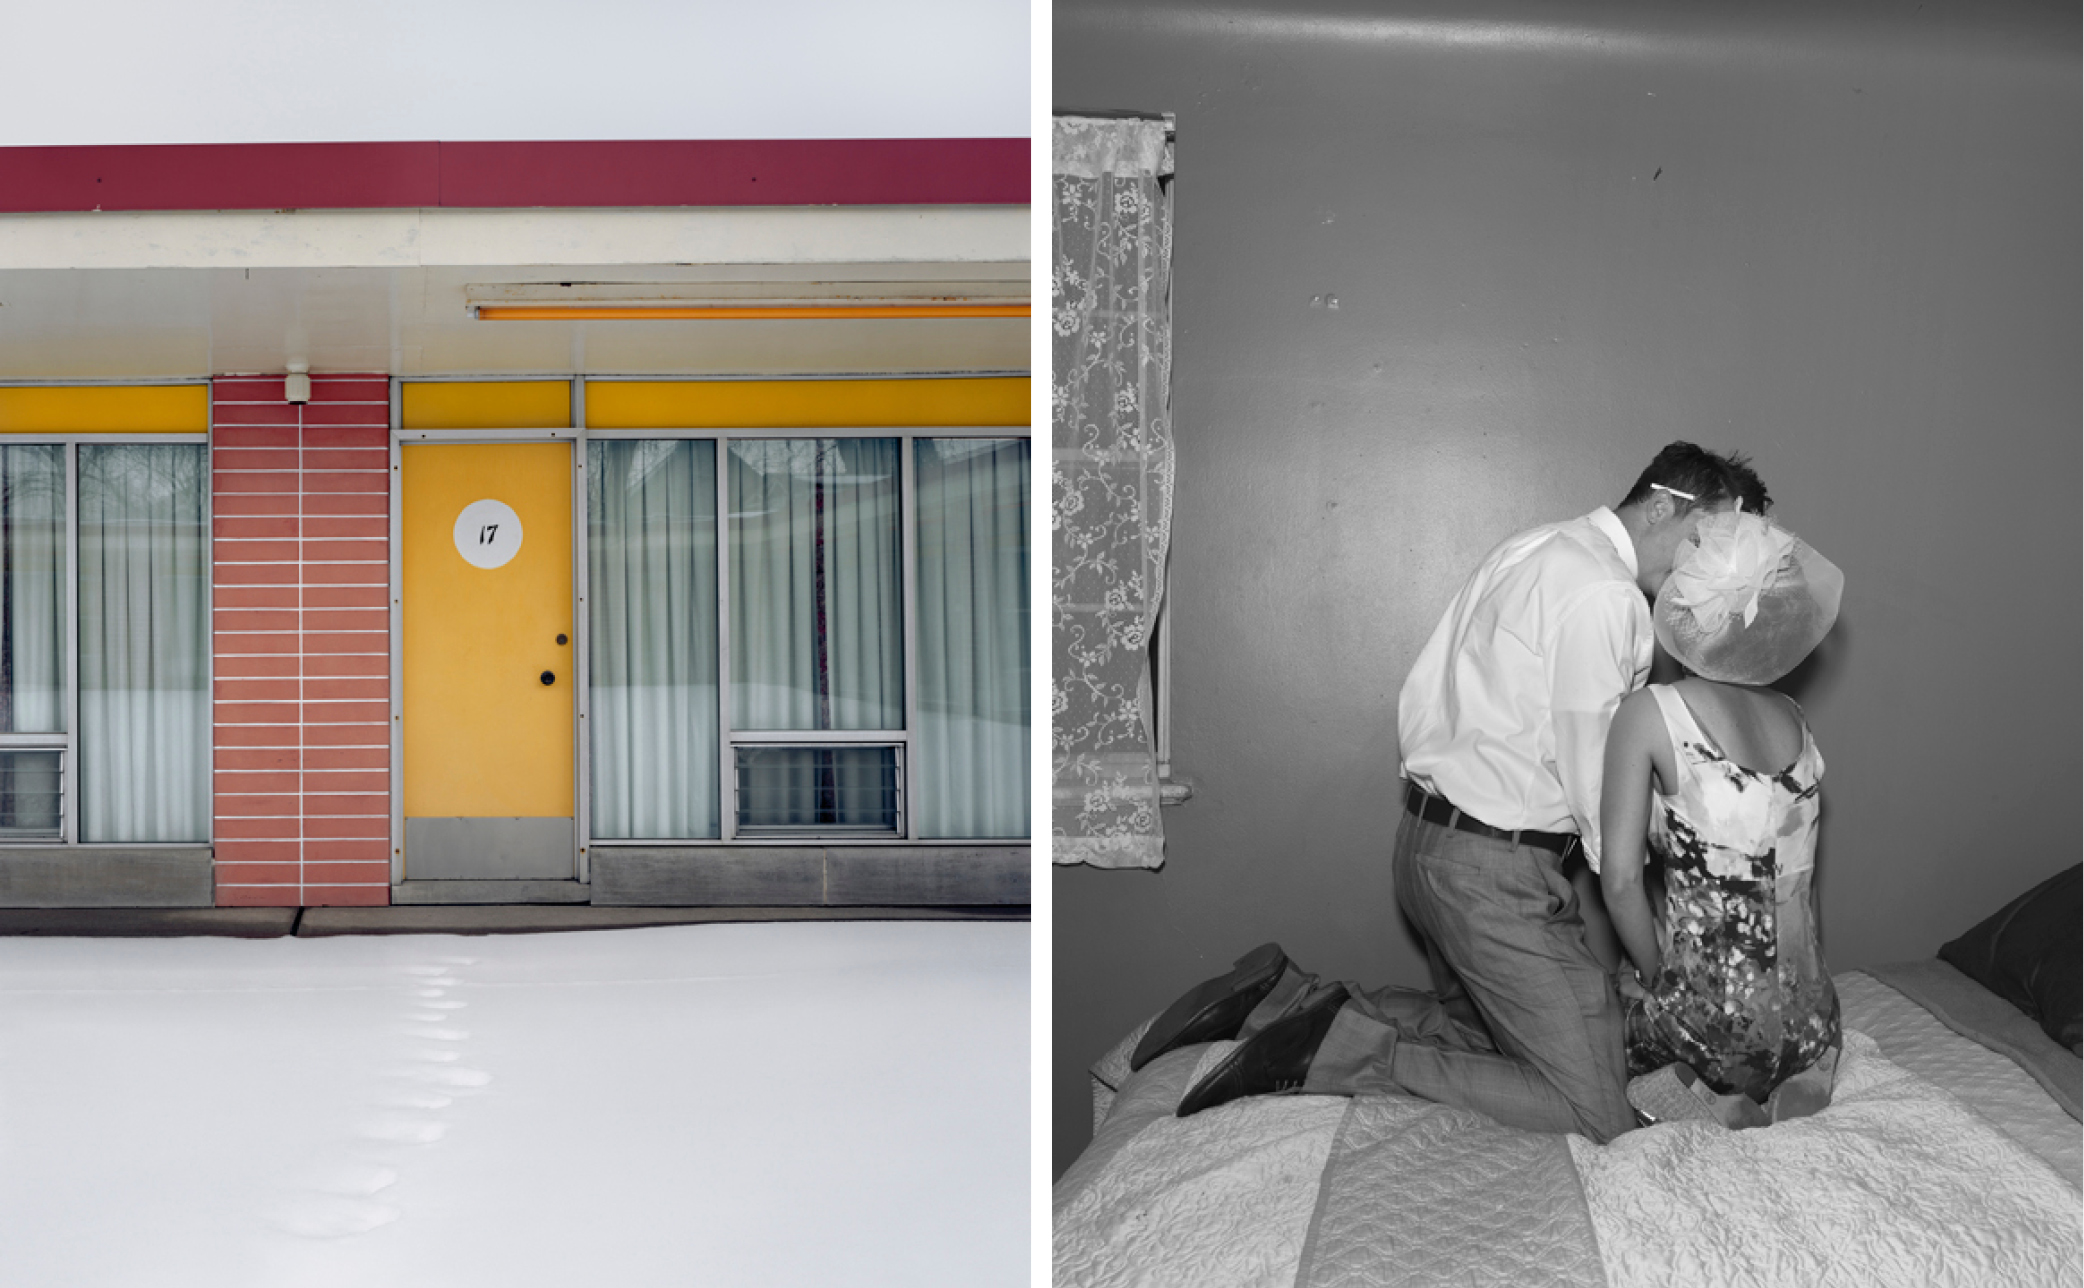 Right: Cadillac Motel, from Niagara, 2005 © Alec Soth – Left: Dave and Trish. Denver, Colorado, from Songbook, 2014 © Alec Soth.